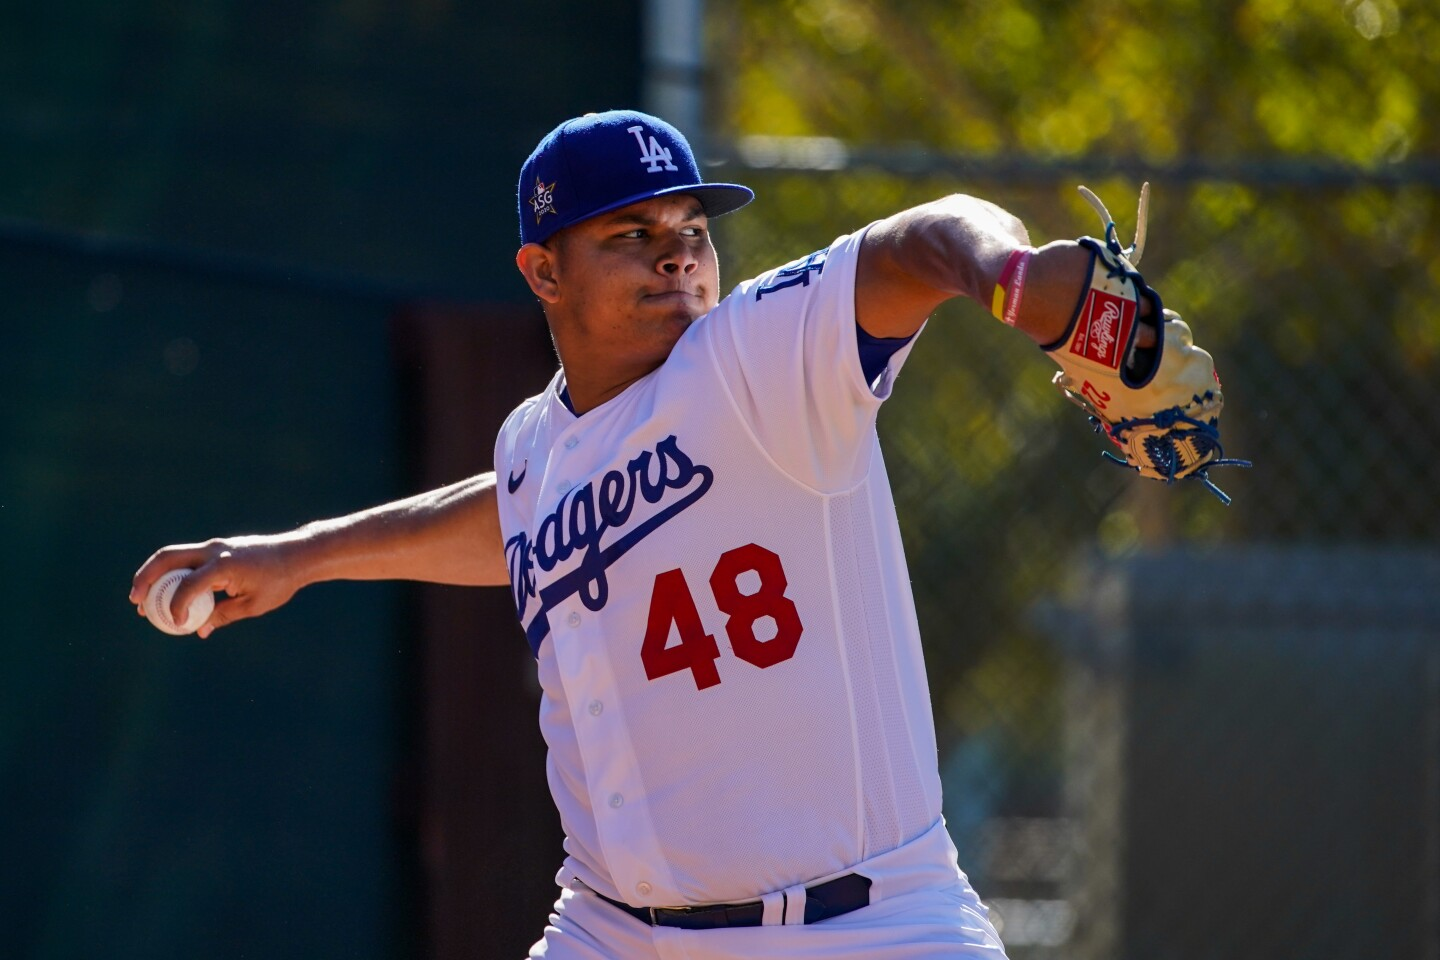 PHOENIX, ARIZ. - FEBRUARY 20: Los Angeles Dodgers Brusdar Graterol (48) pitches during practice at Spring Training at Cameback Ranch on Thursday, Feb. 20, 2020 in Phoenix, Ariz. (Kent Nishimura / Los Angeles Times)